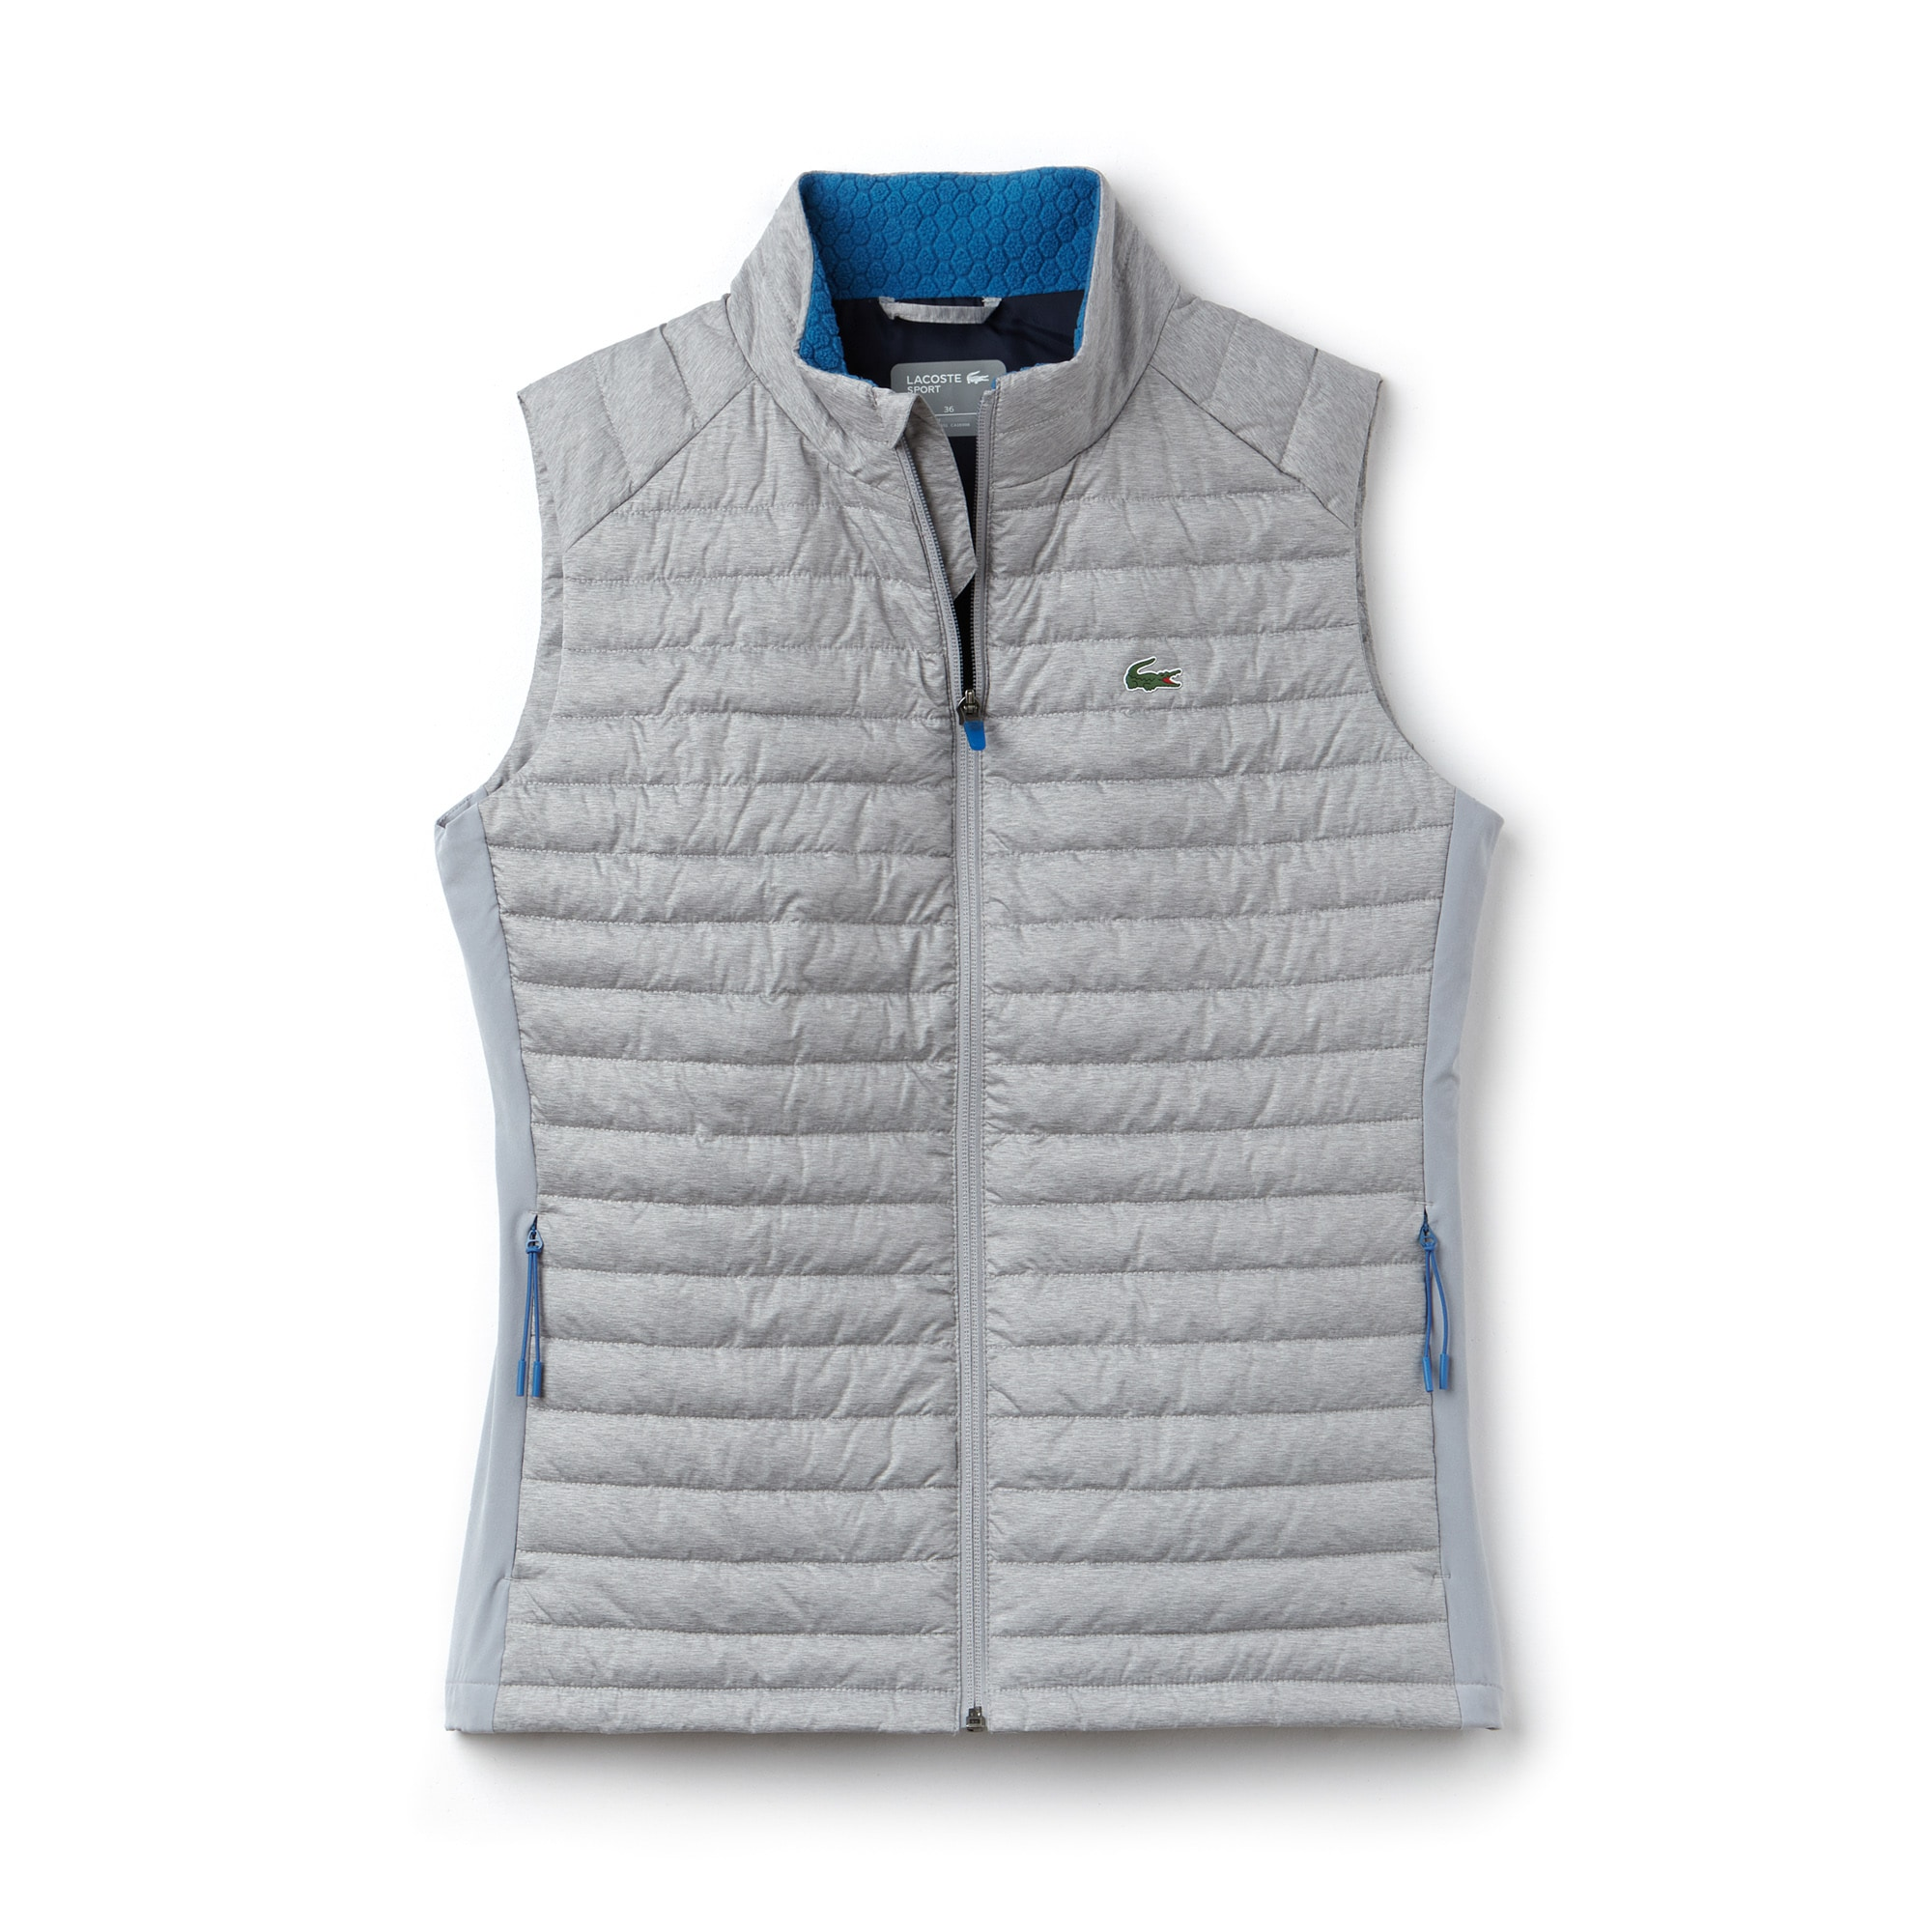 Women's Lacoste SPORT Technical Taffeta Golf Quilted Vest